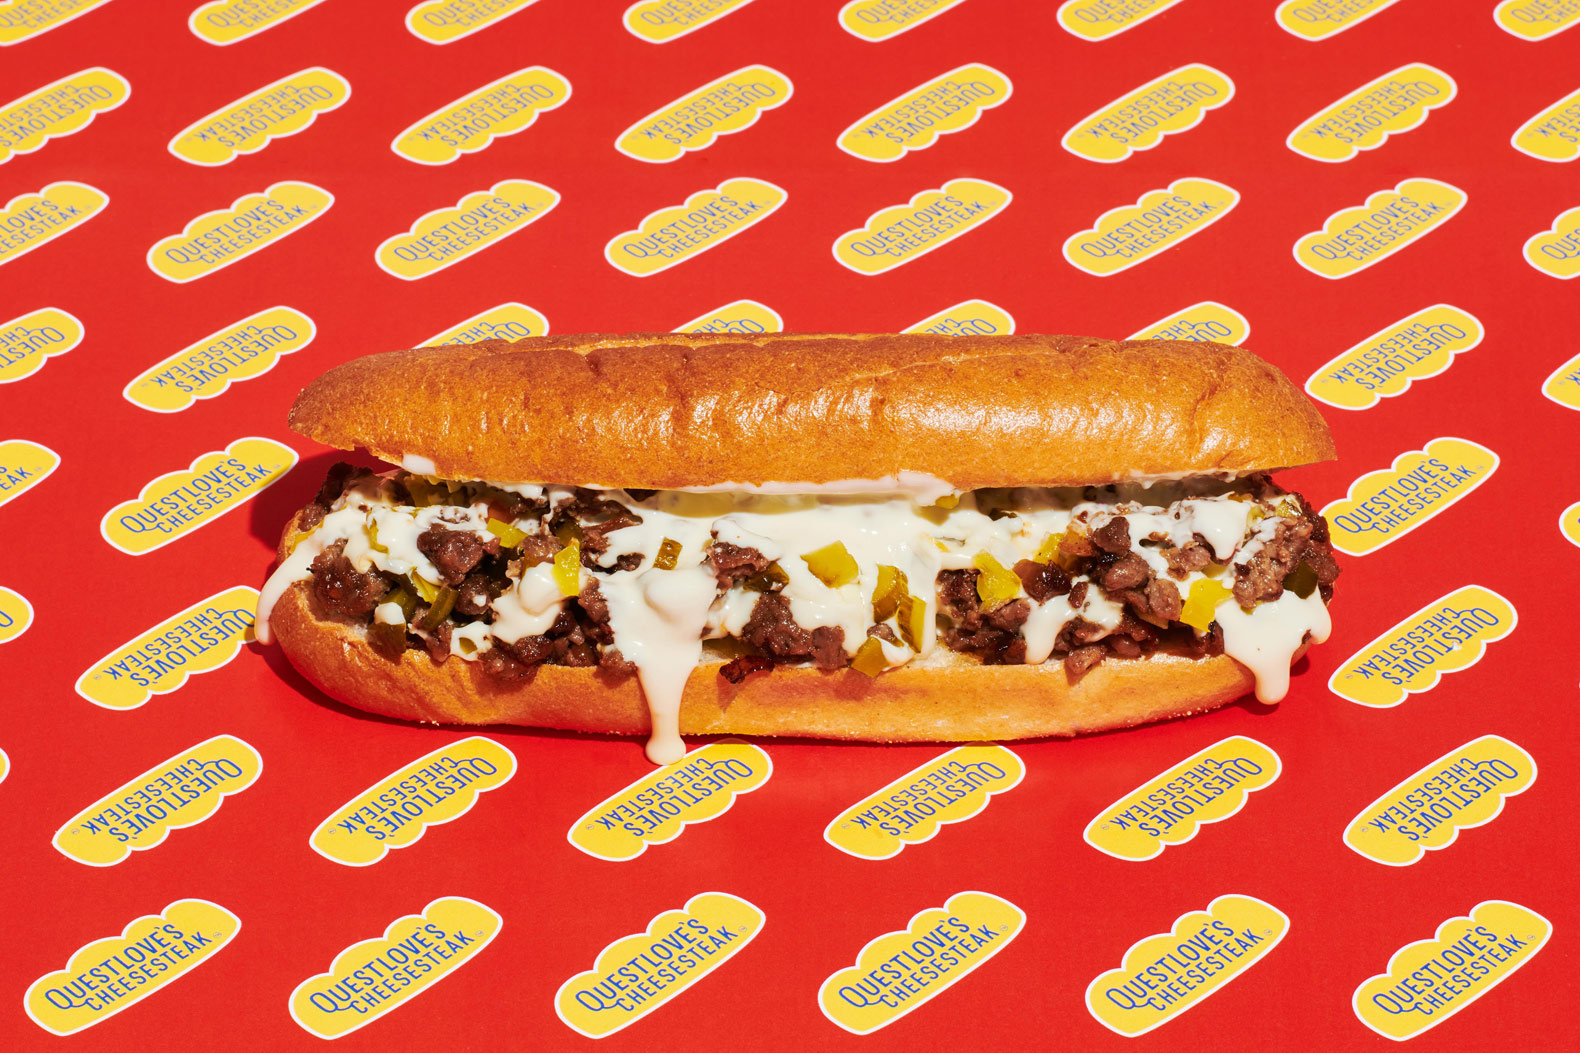 Questlove and Live Nation are bringing an Impossible plant-based Cheesesteak to a venue near you